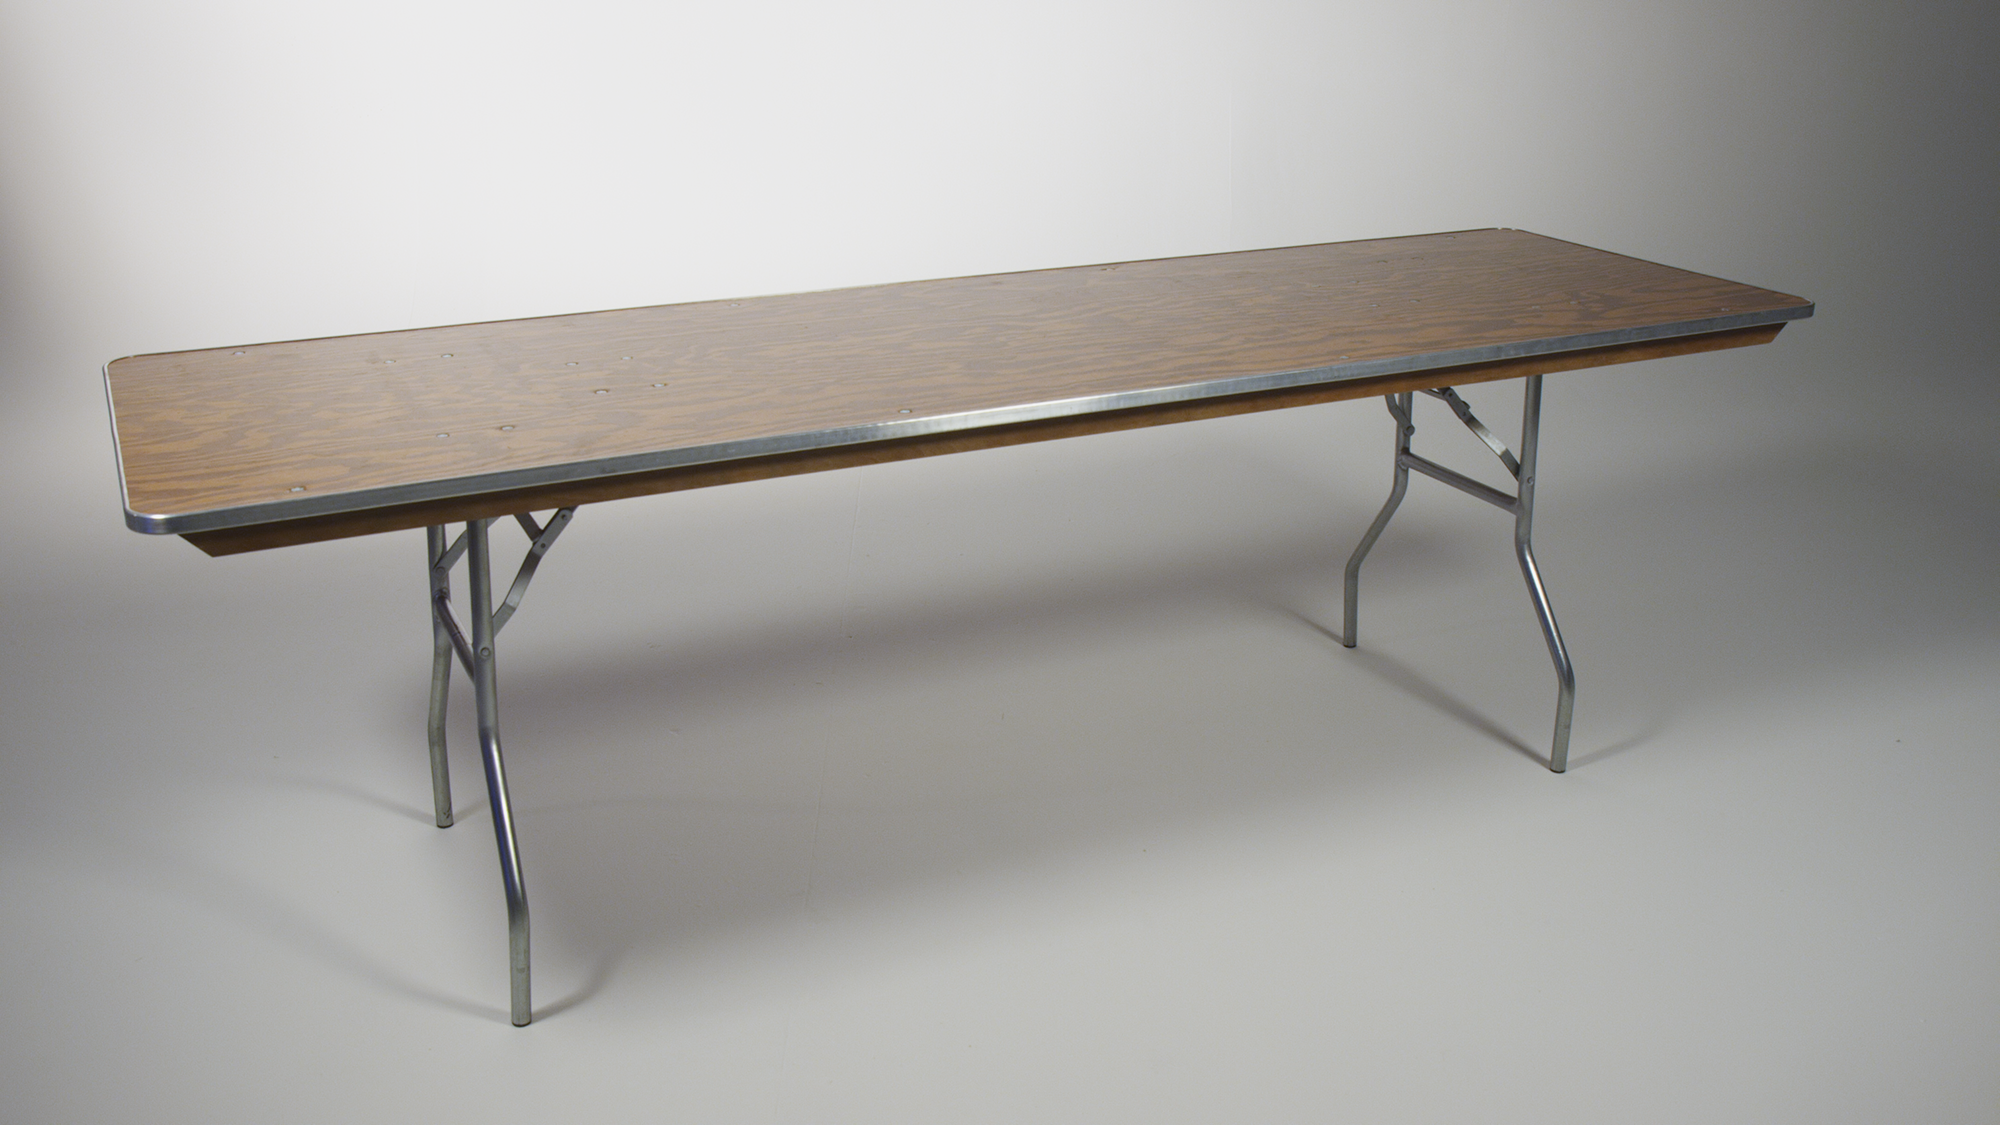 100 Series Plywood Banquet Table.png